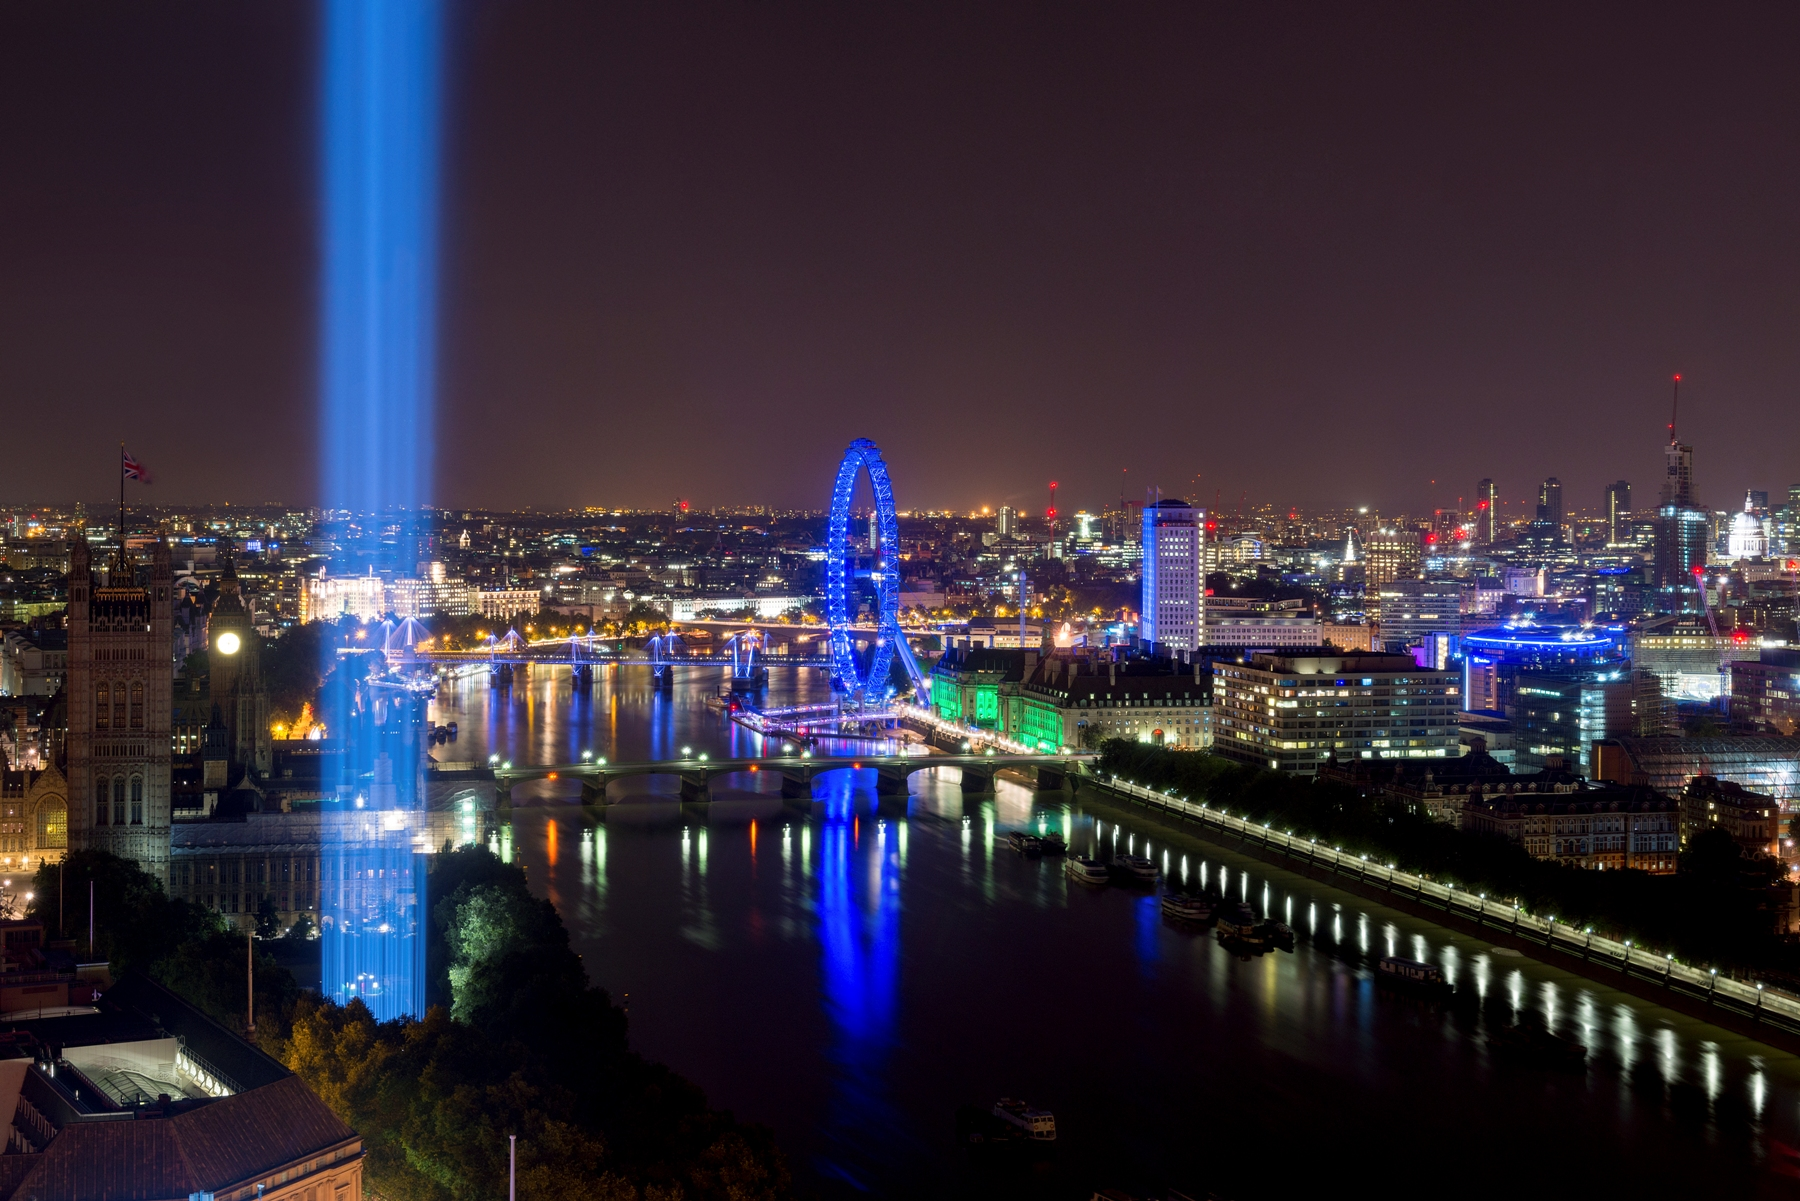 spectra by Ryoji Ikeda, 2014. View from Millbank Tower. Image credit - Will Eckersley.